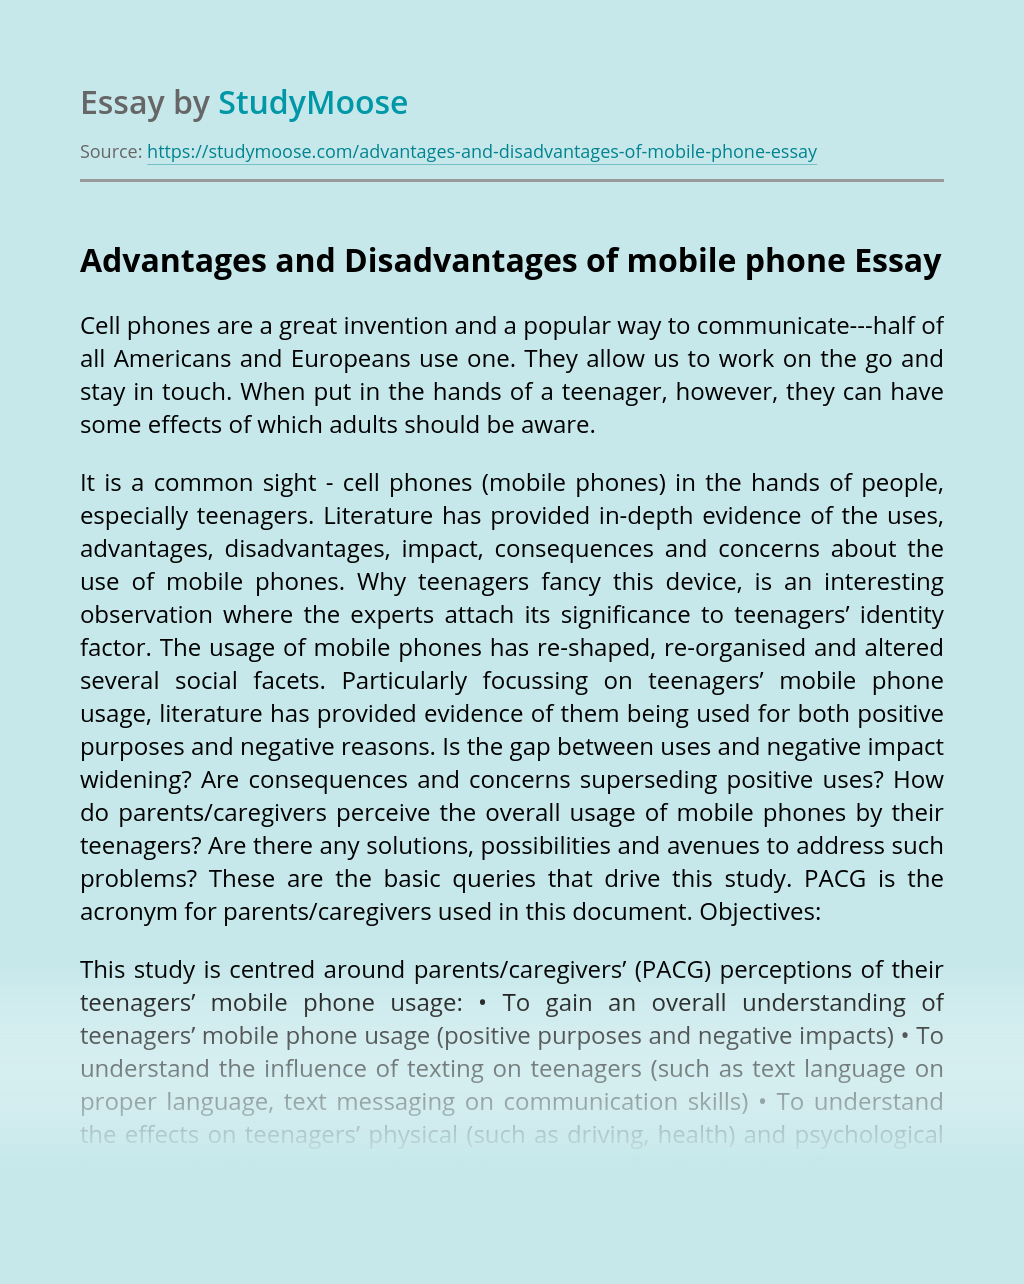 Advantages and Disadvantages of mobile phone